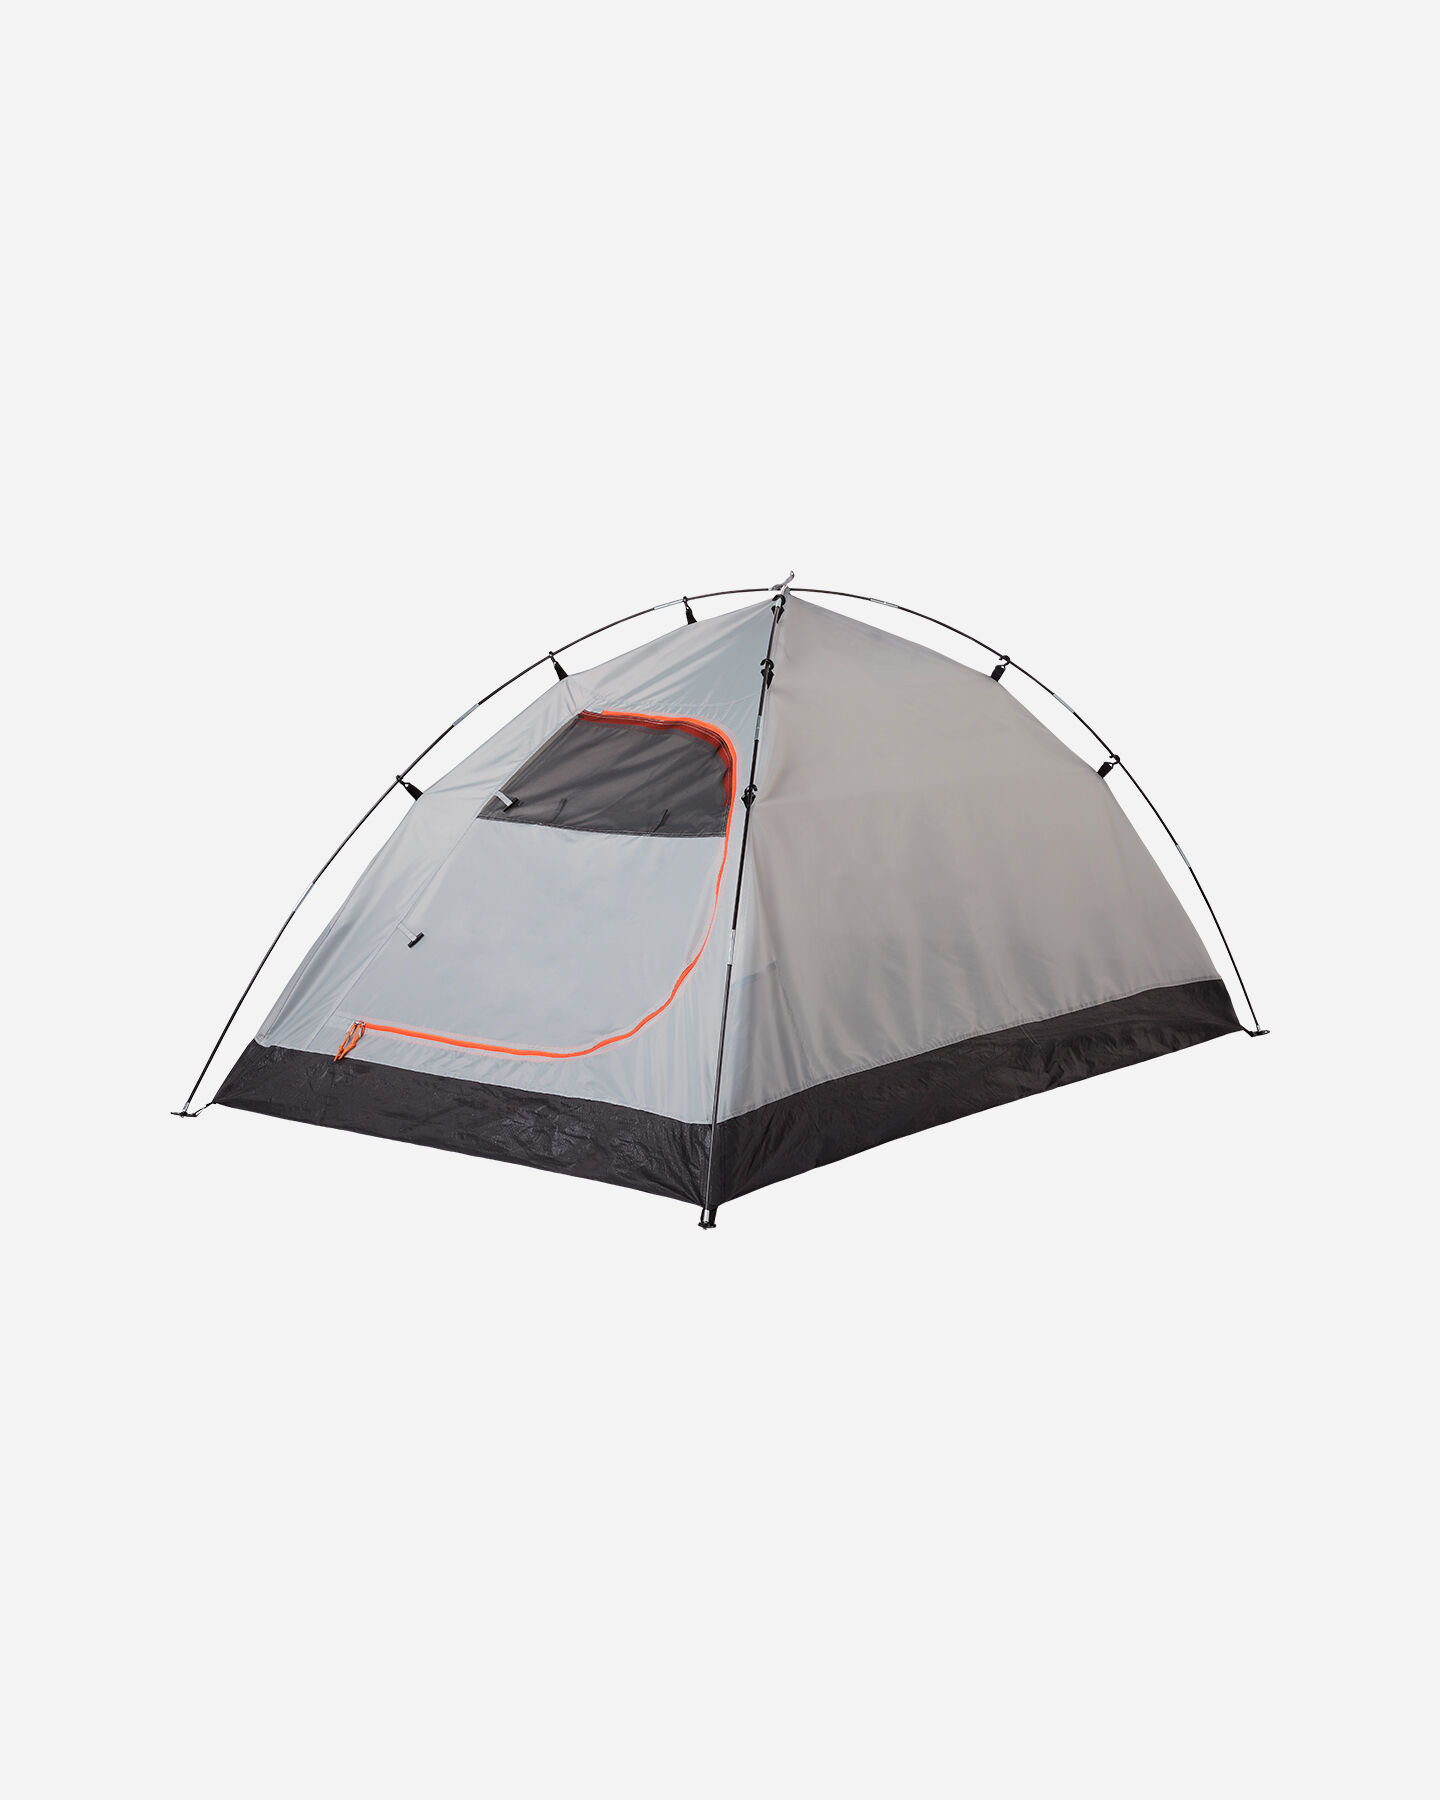 Tenda MCKINLEY VEGA 10.2 S2021951|900|- scatto 3